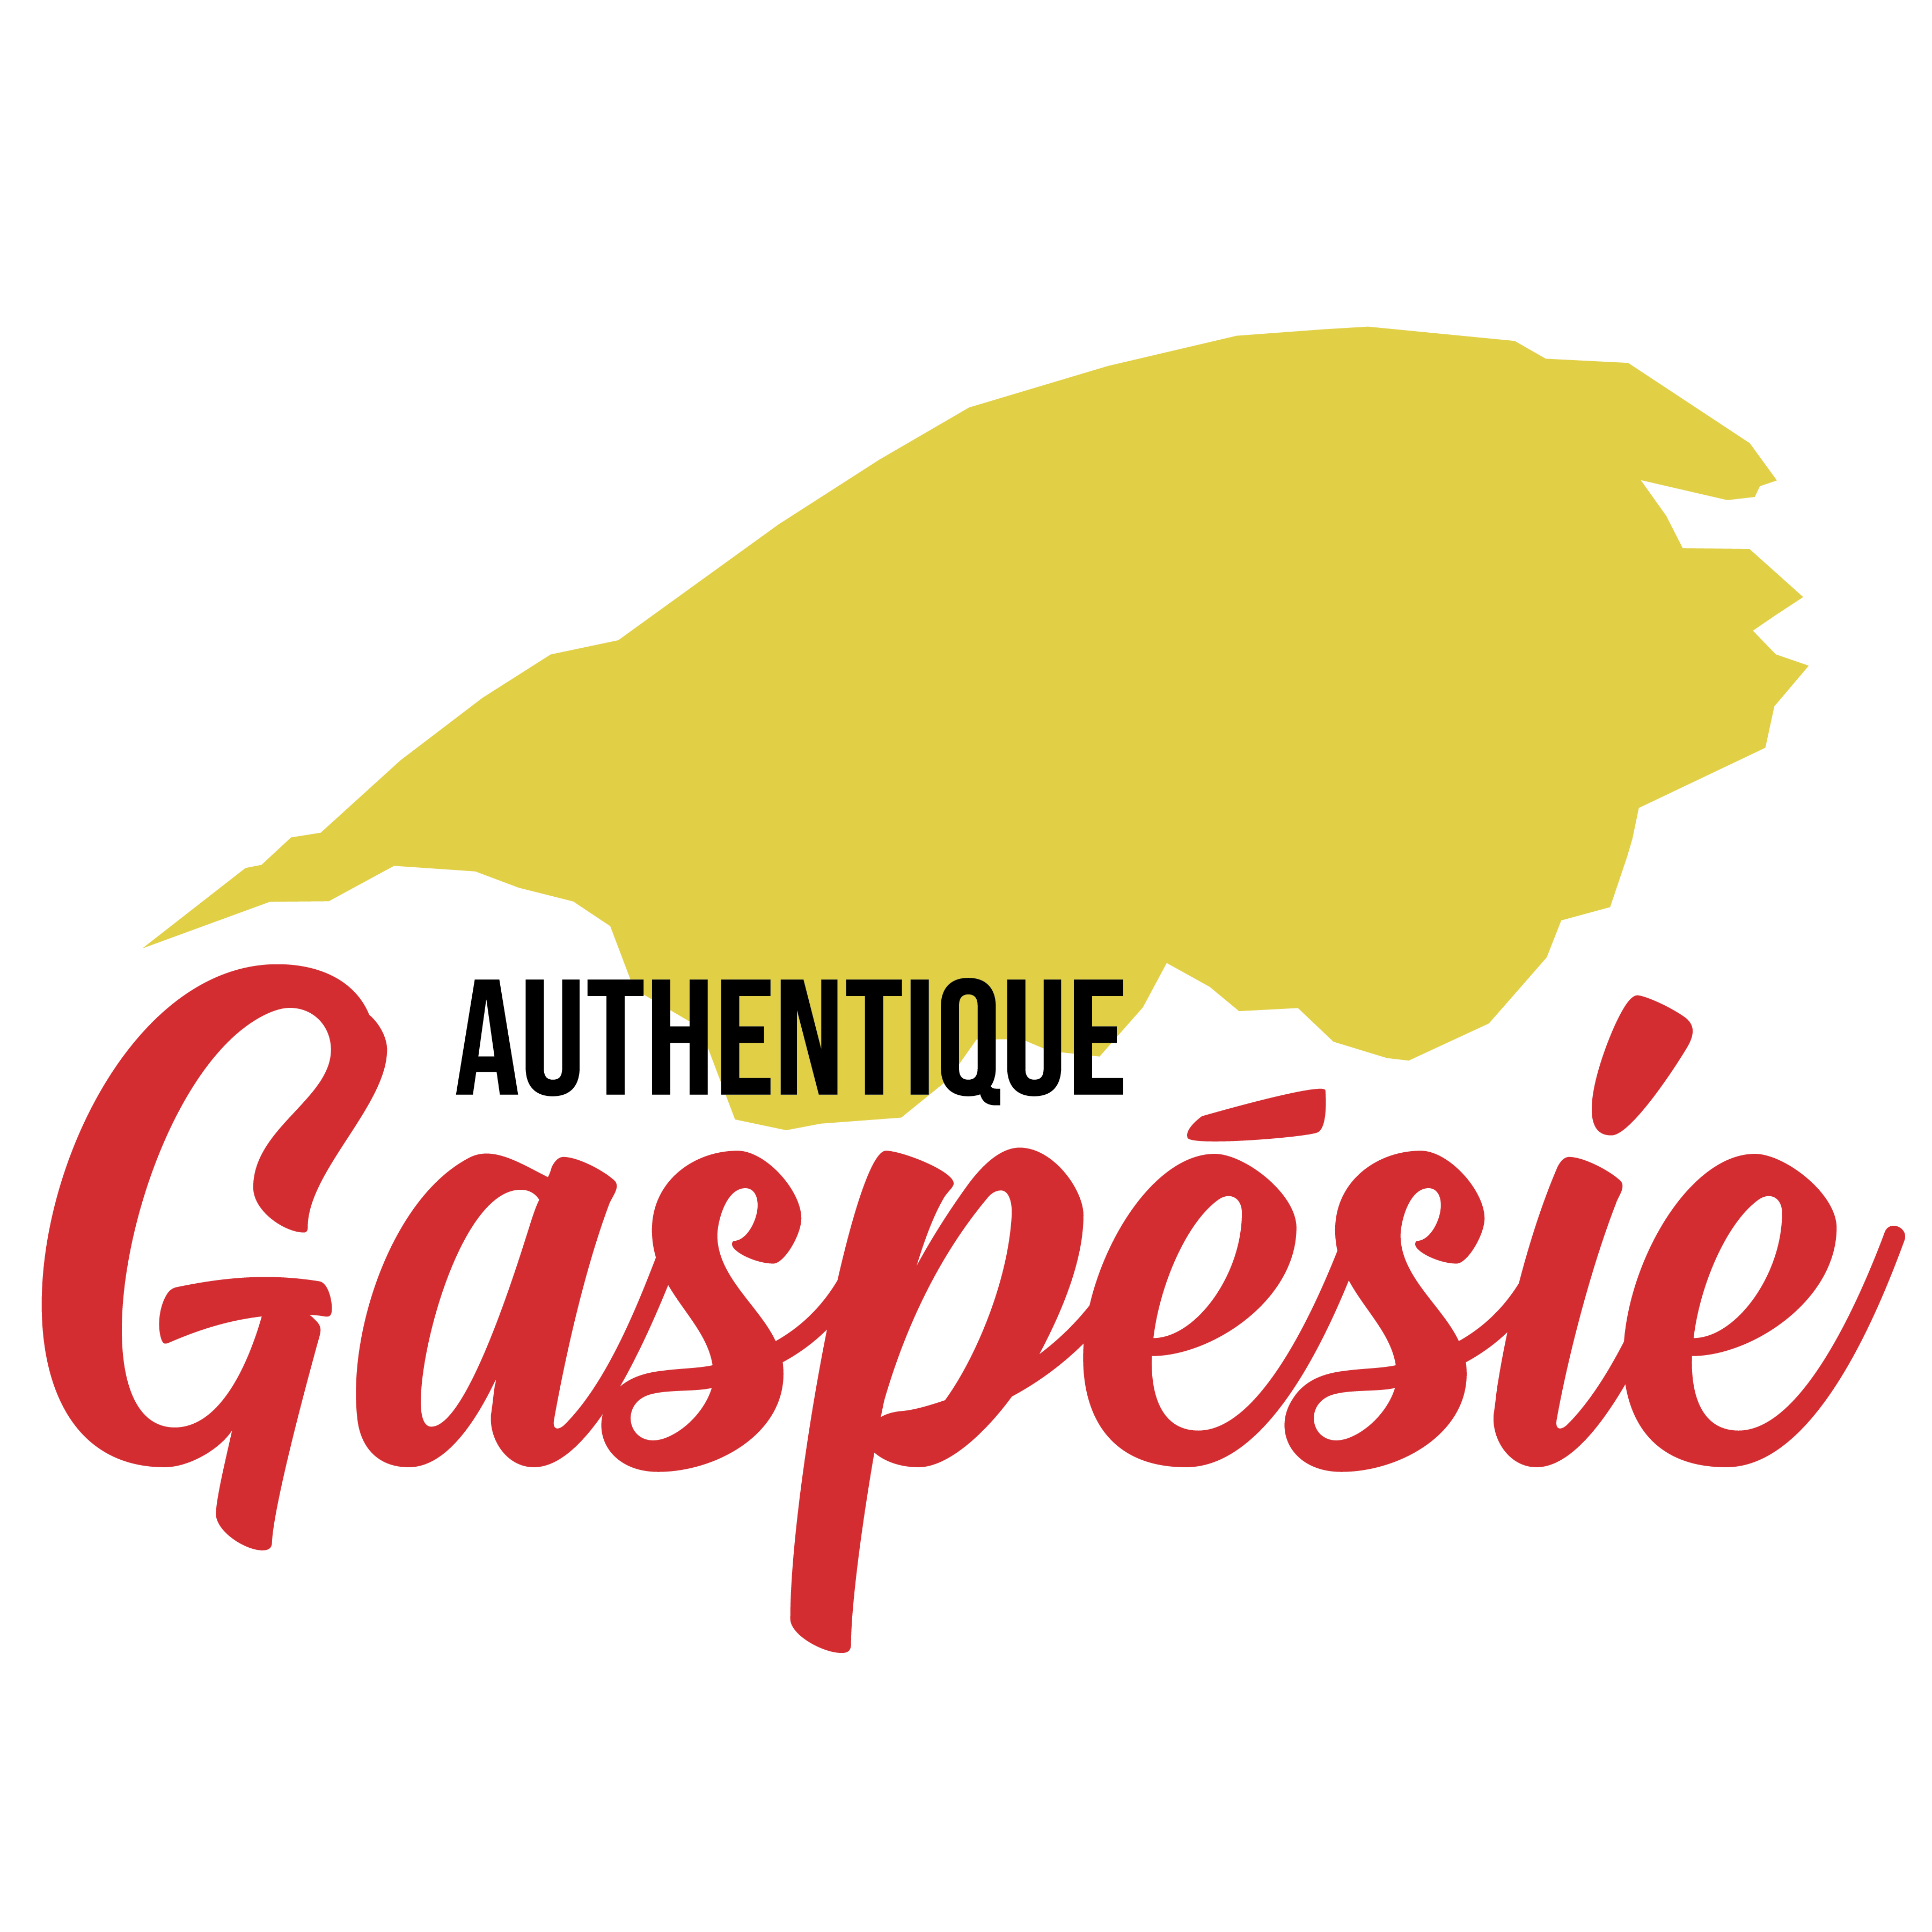 logo-authentique-gaspesie